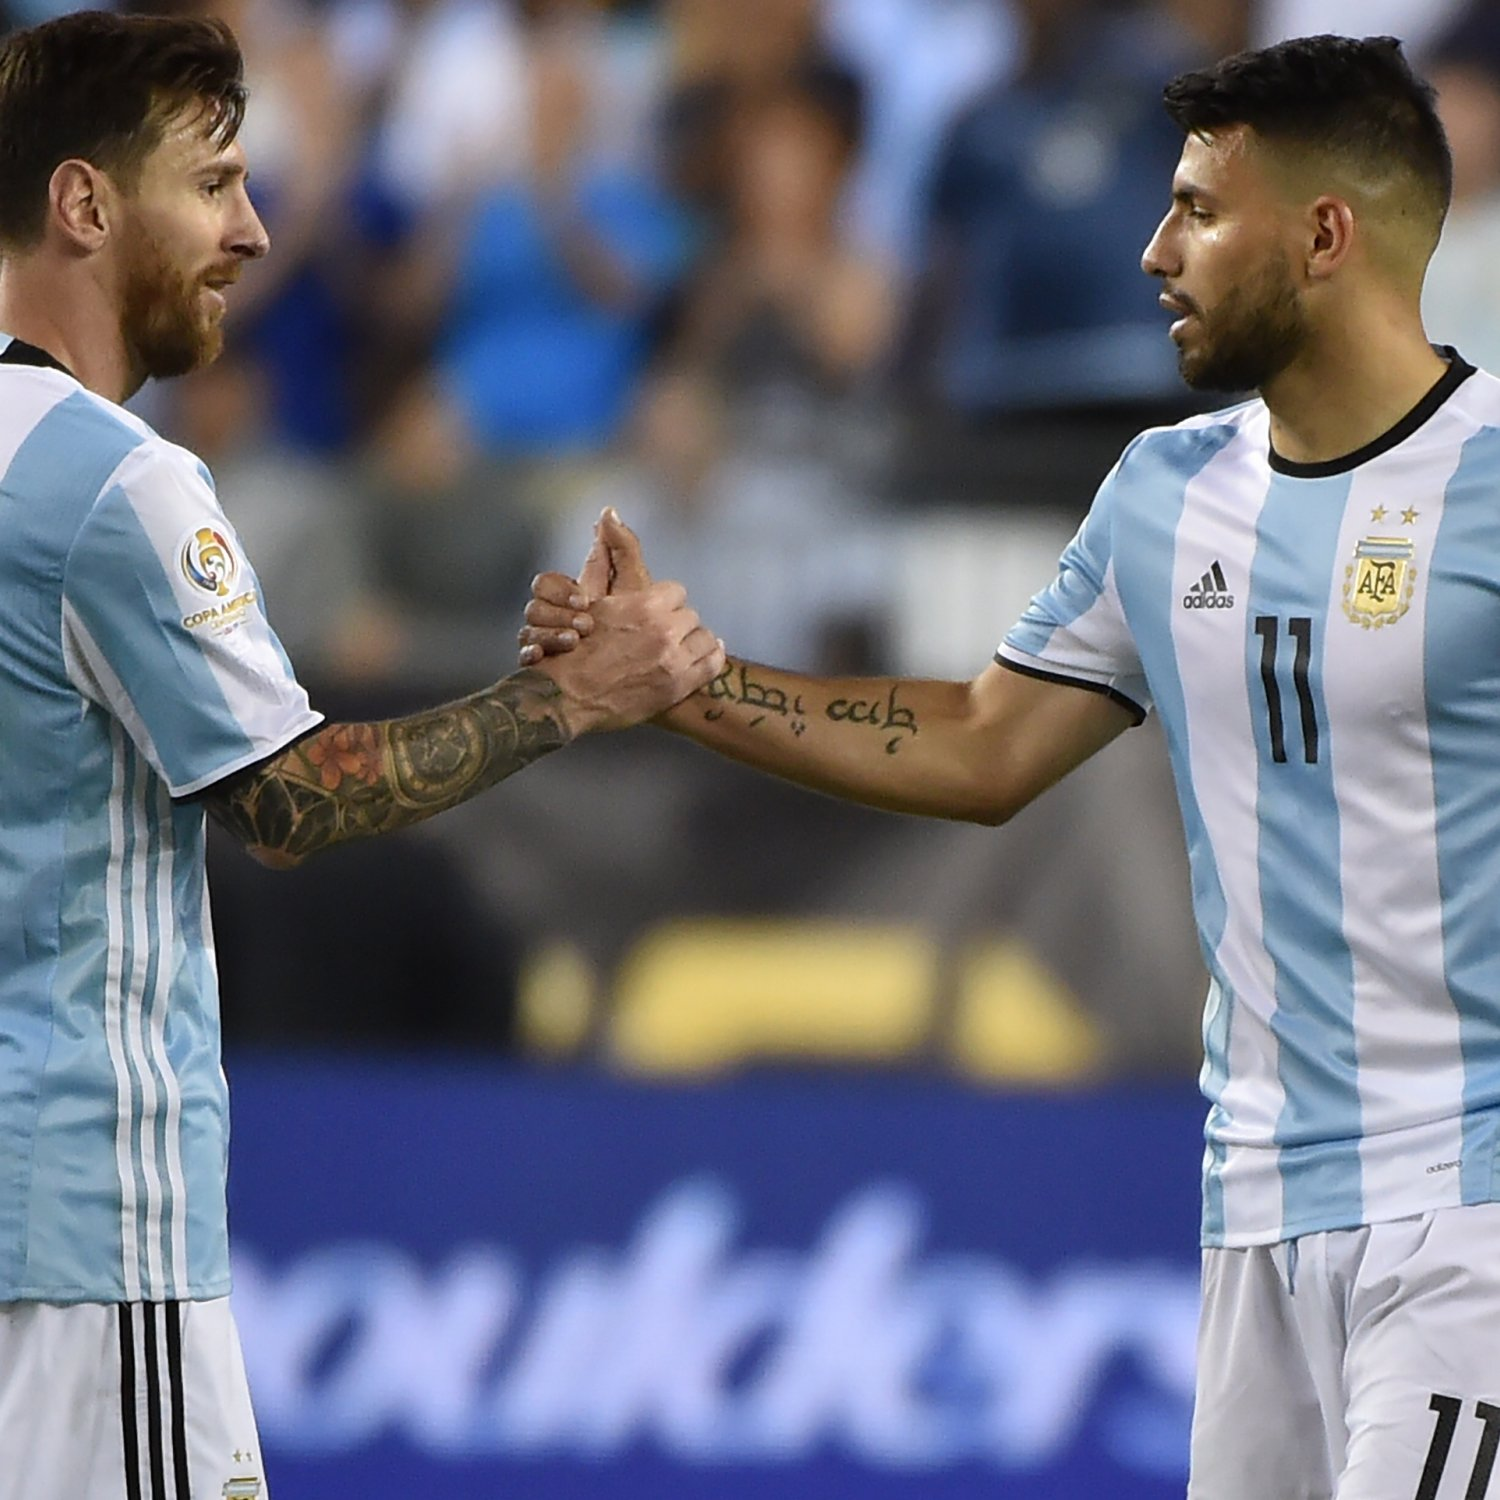 Campeonato Brasileiro Key Missing Players: Lionel Messi 'Broken' After Copa America Final Penalty